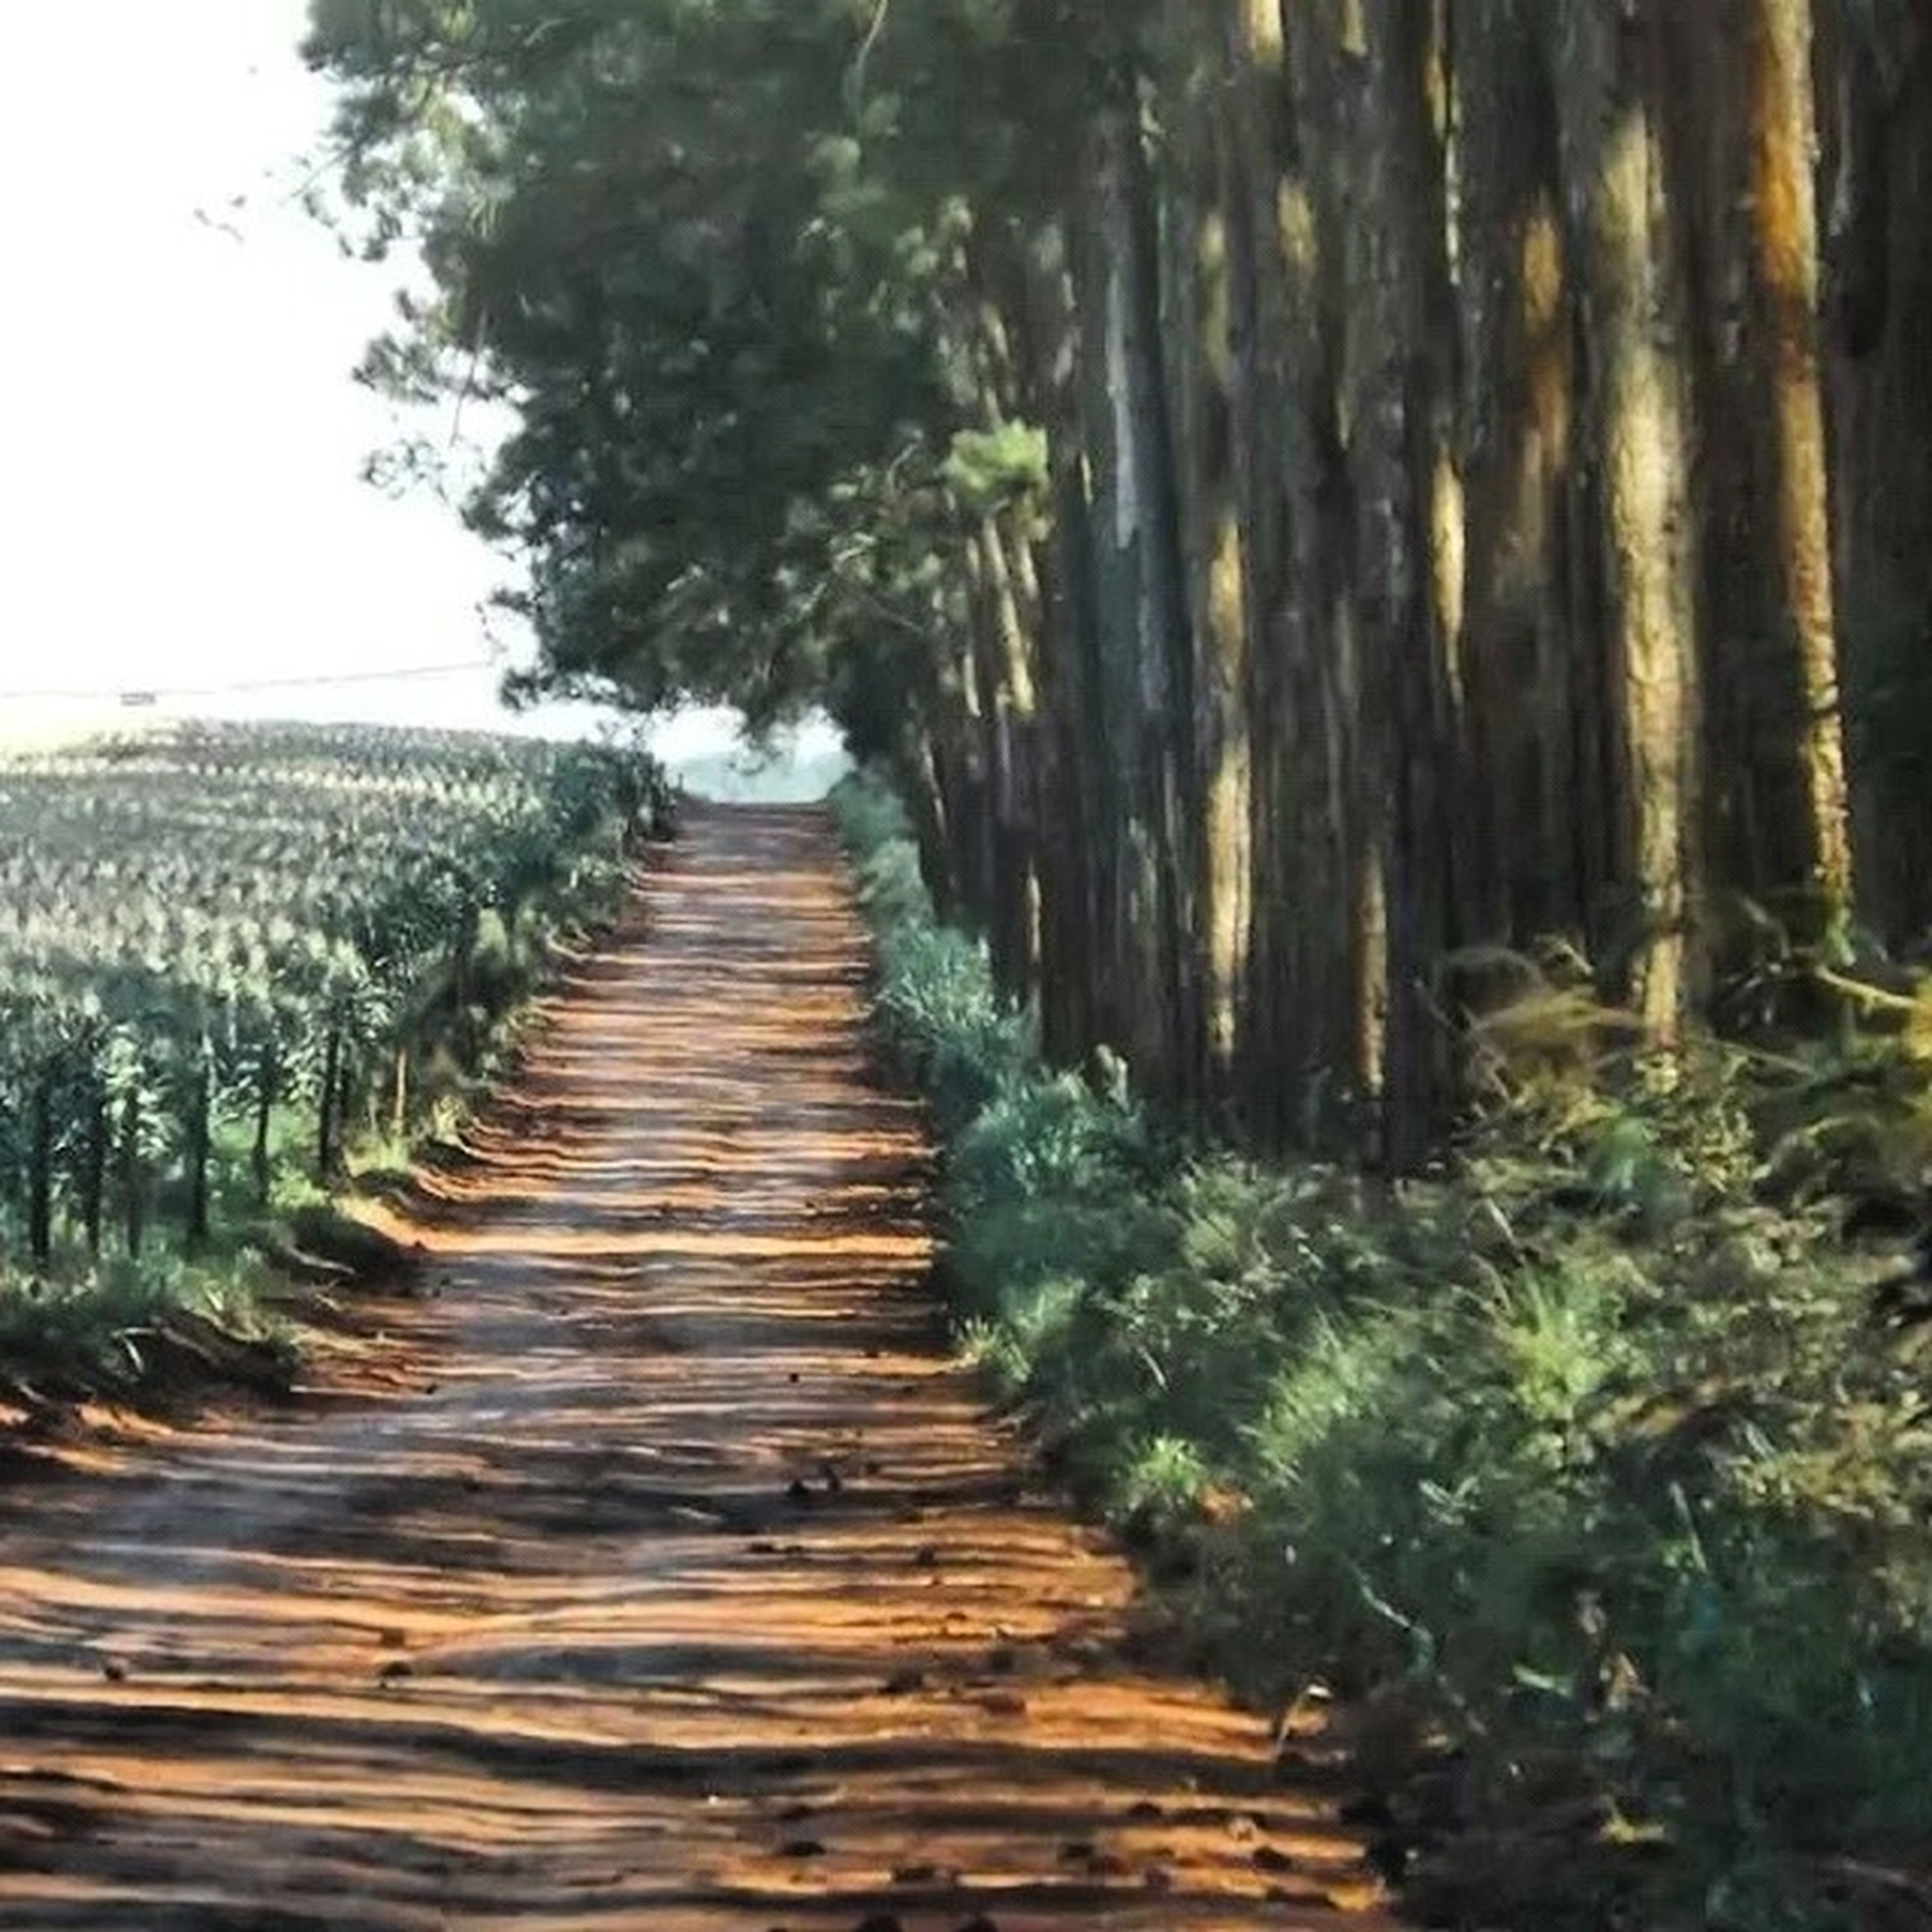 the way forward, tree, diminishing perspective, tranquility, tranquil scene, vanishing point, nature, growth, footpath, walkway, pathway, narrow, beauty in nature, scenics, wood - material, in a row, forest, plant, long, green color